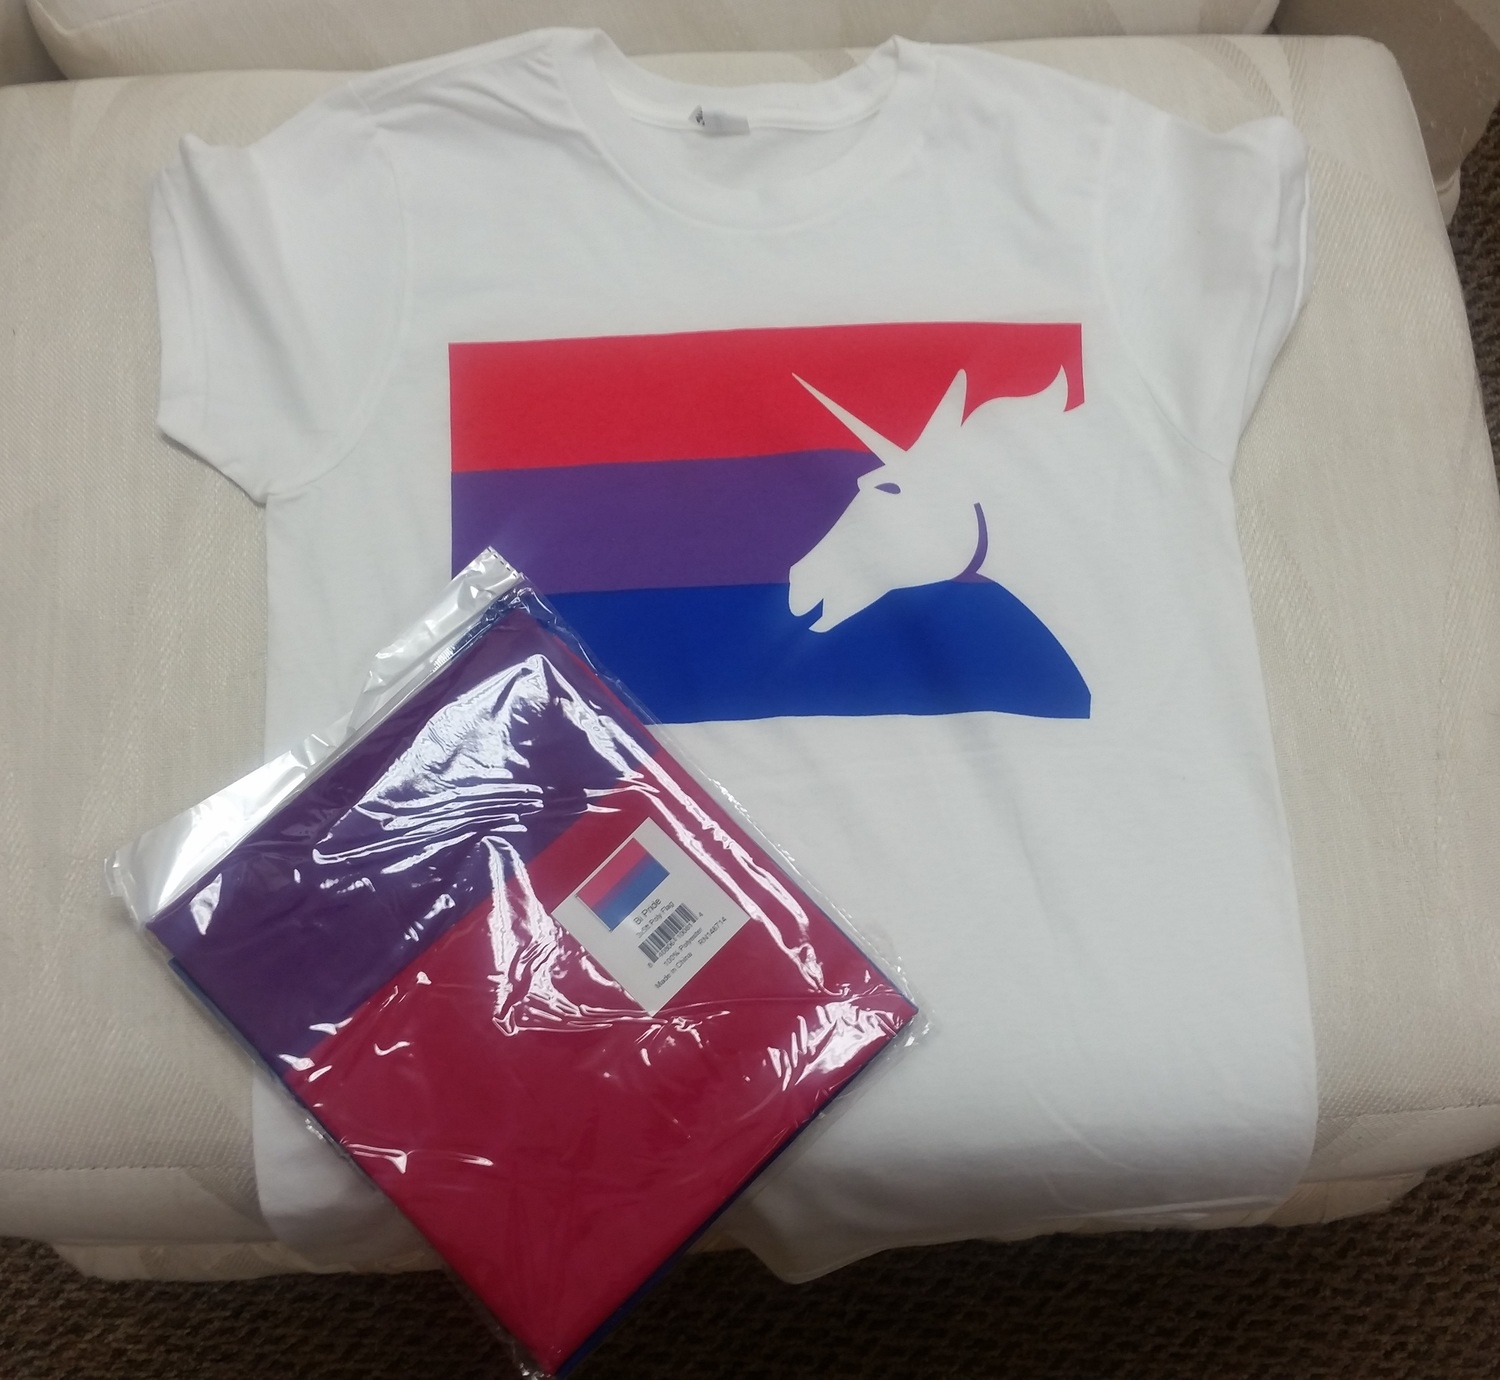 4d6cee11245 Today I shipped off a bisexual pride unicorn shirt and a bisexual pride flag  to a woman who bought them for her husband. Now I'm not sure if she is bi,  ...